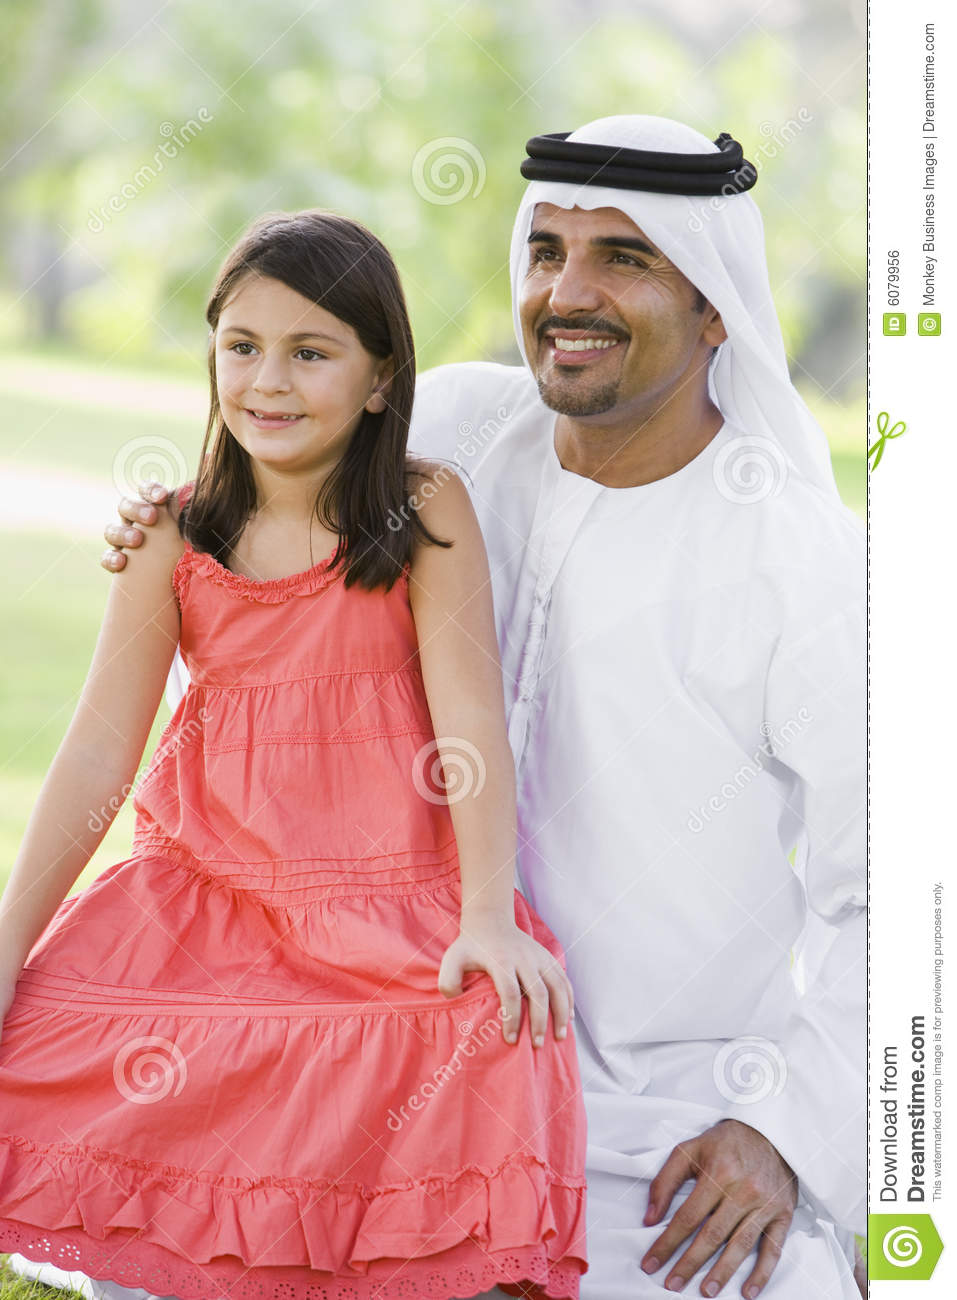 middle eastern single men in park But being arab and single is  belly dance middle eastern dance and music social singles arabic culture arabic language middle eastern culture arab egyptians .